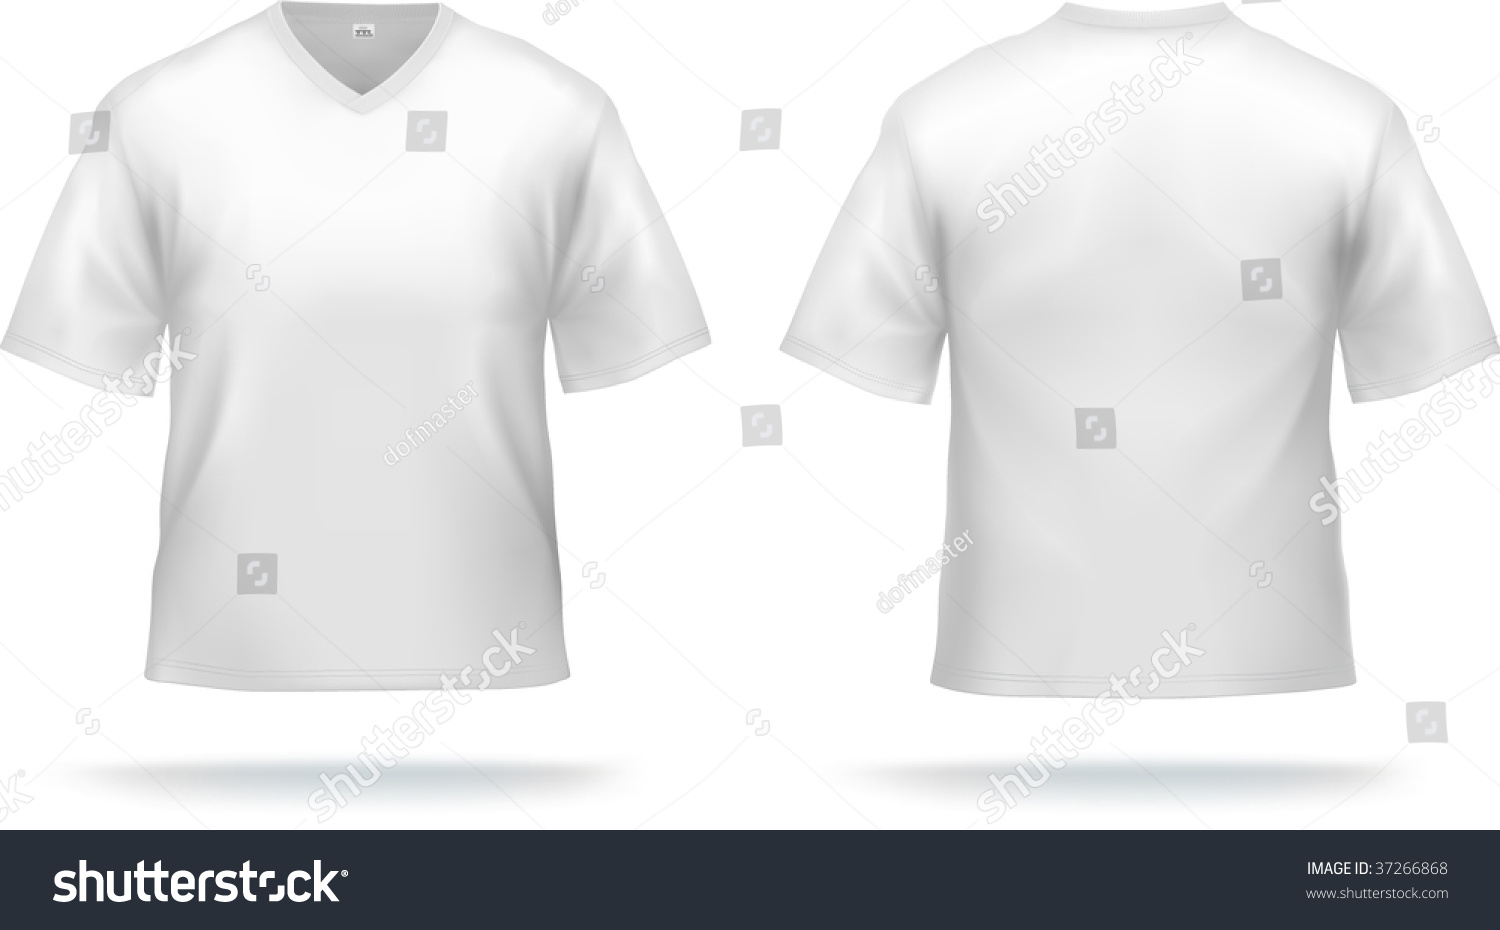 Design t shirt collar - White T Shirt With Triangle Collar Can Be Used As Design Template Contains